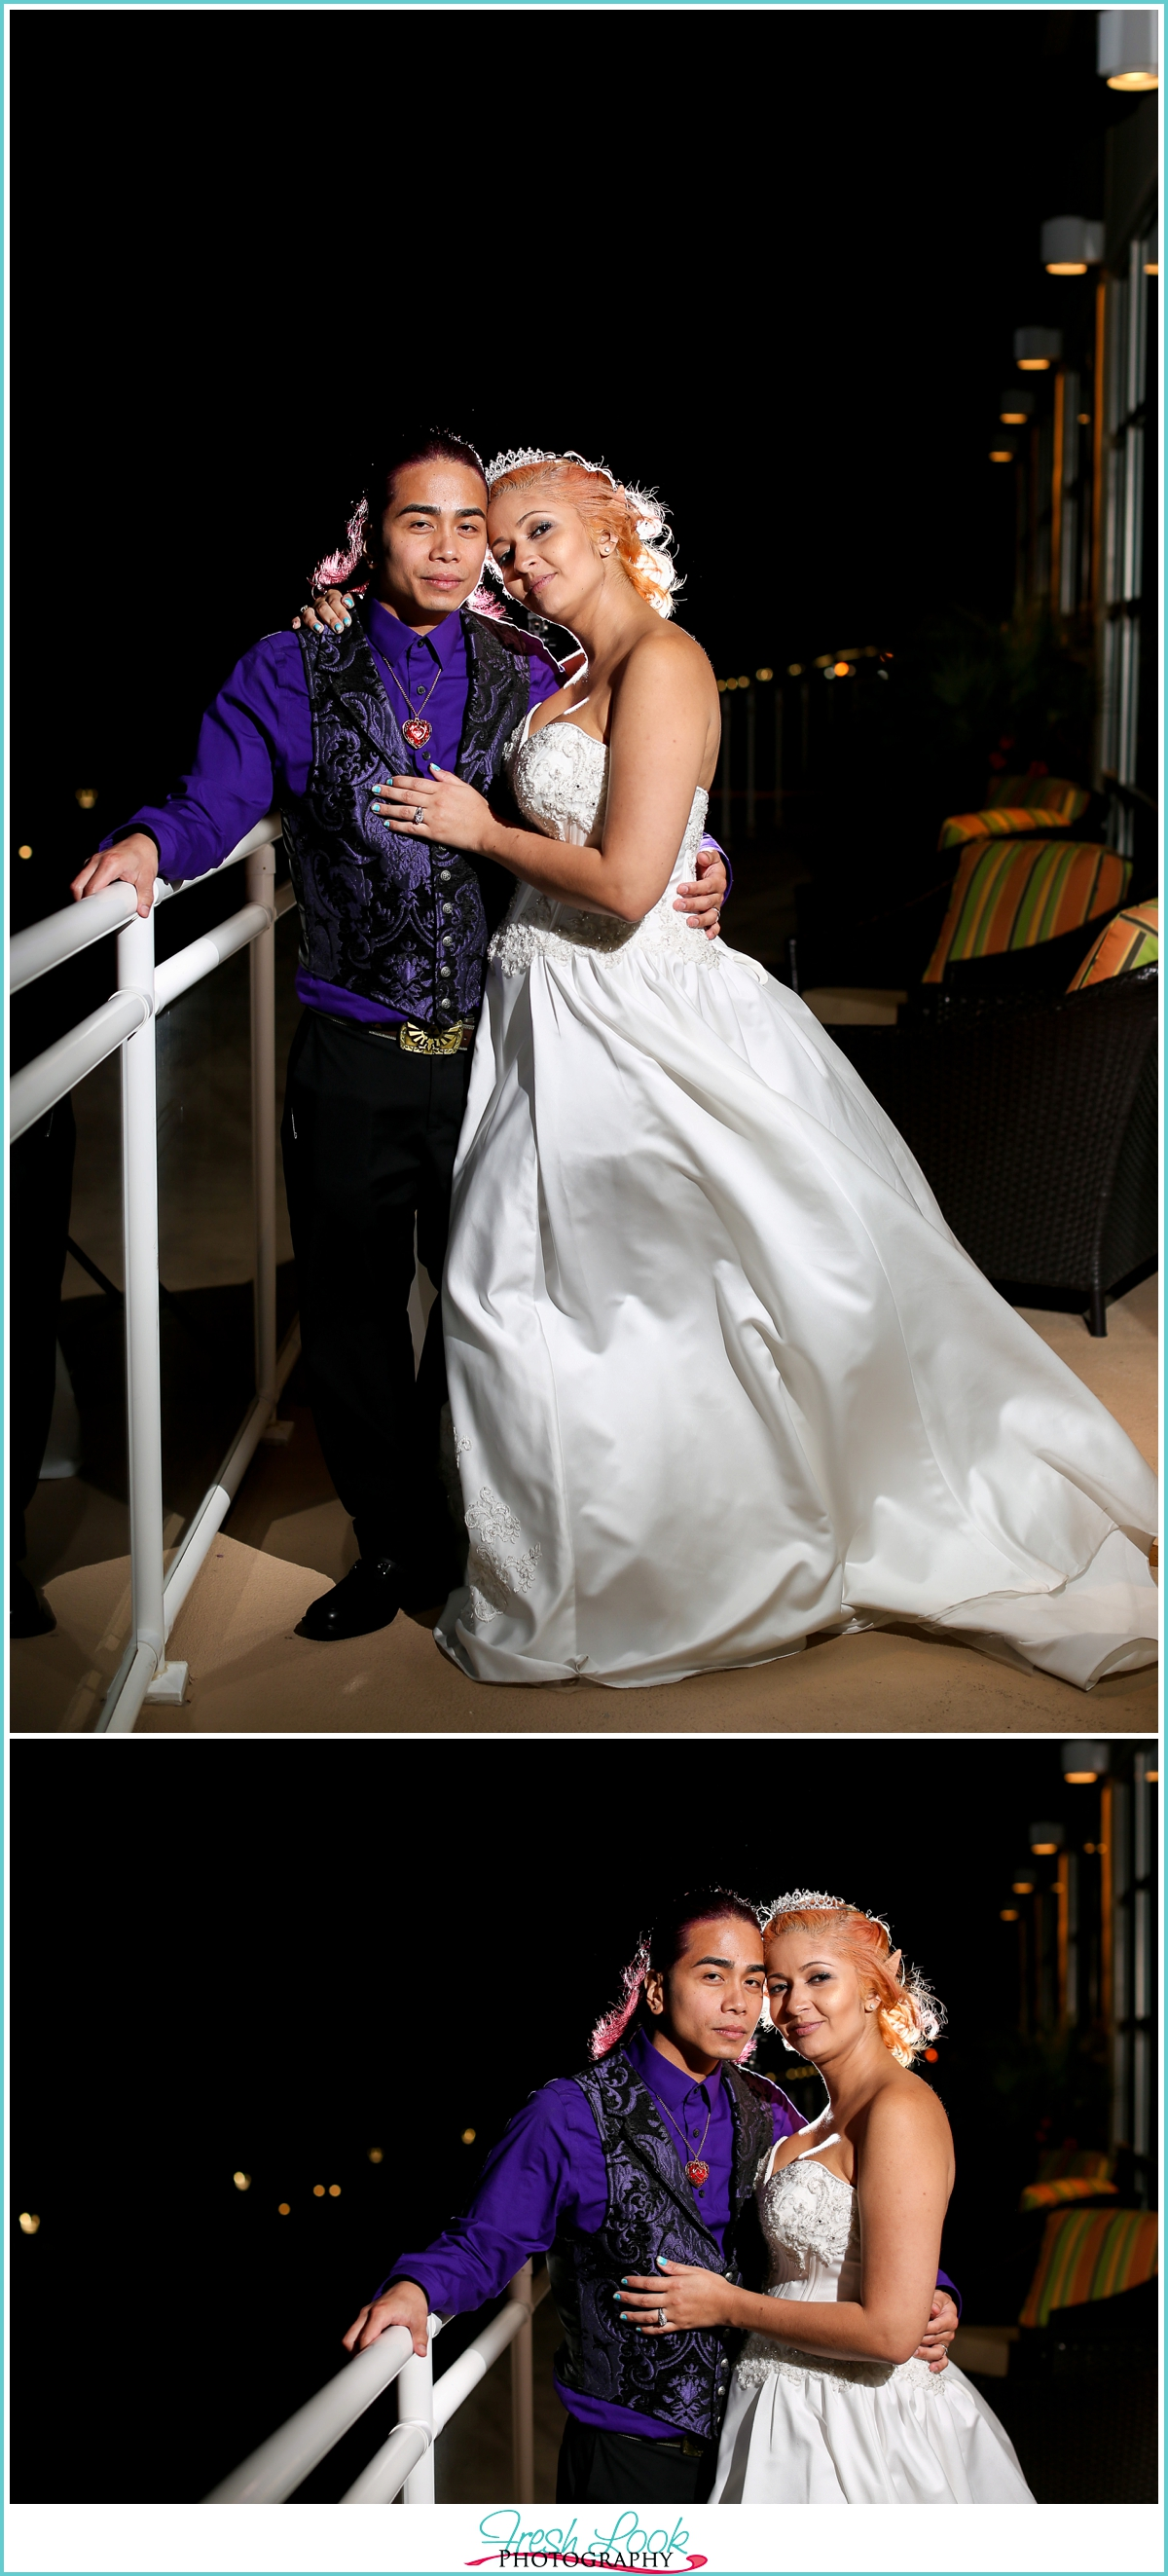 dramatic lighting with bride and groom